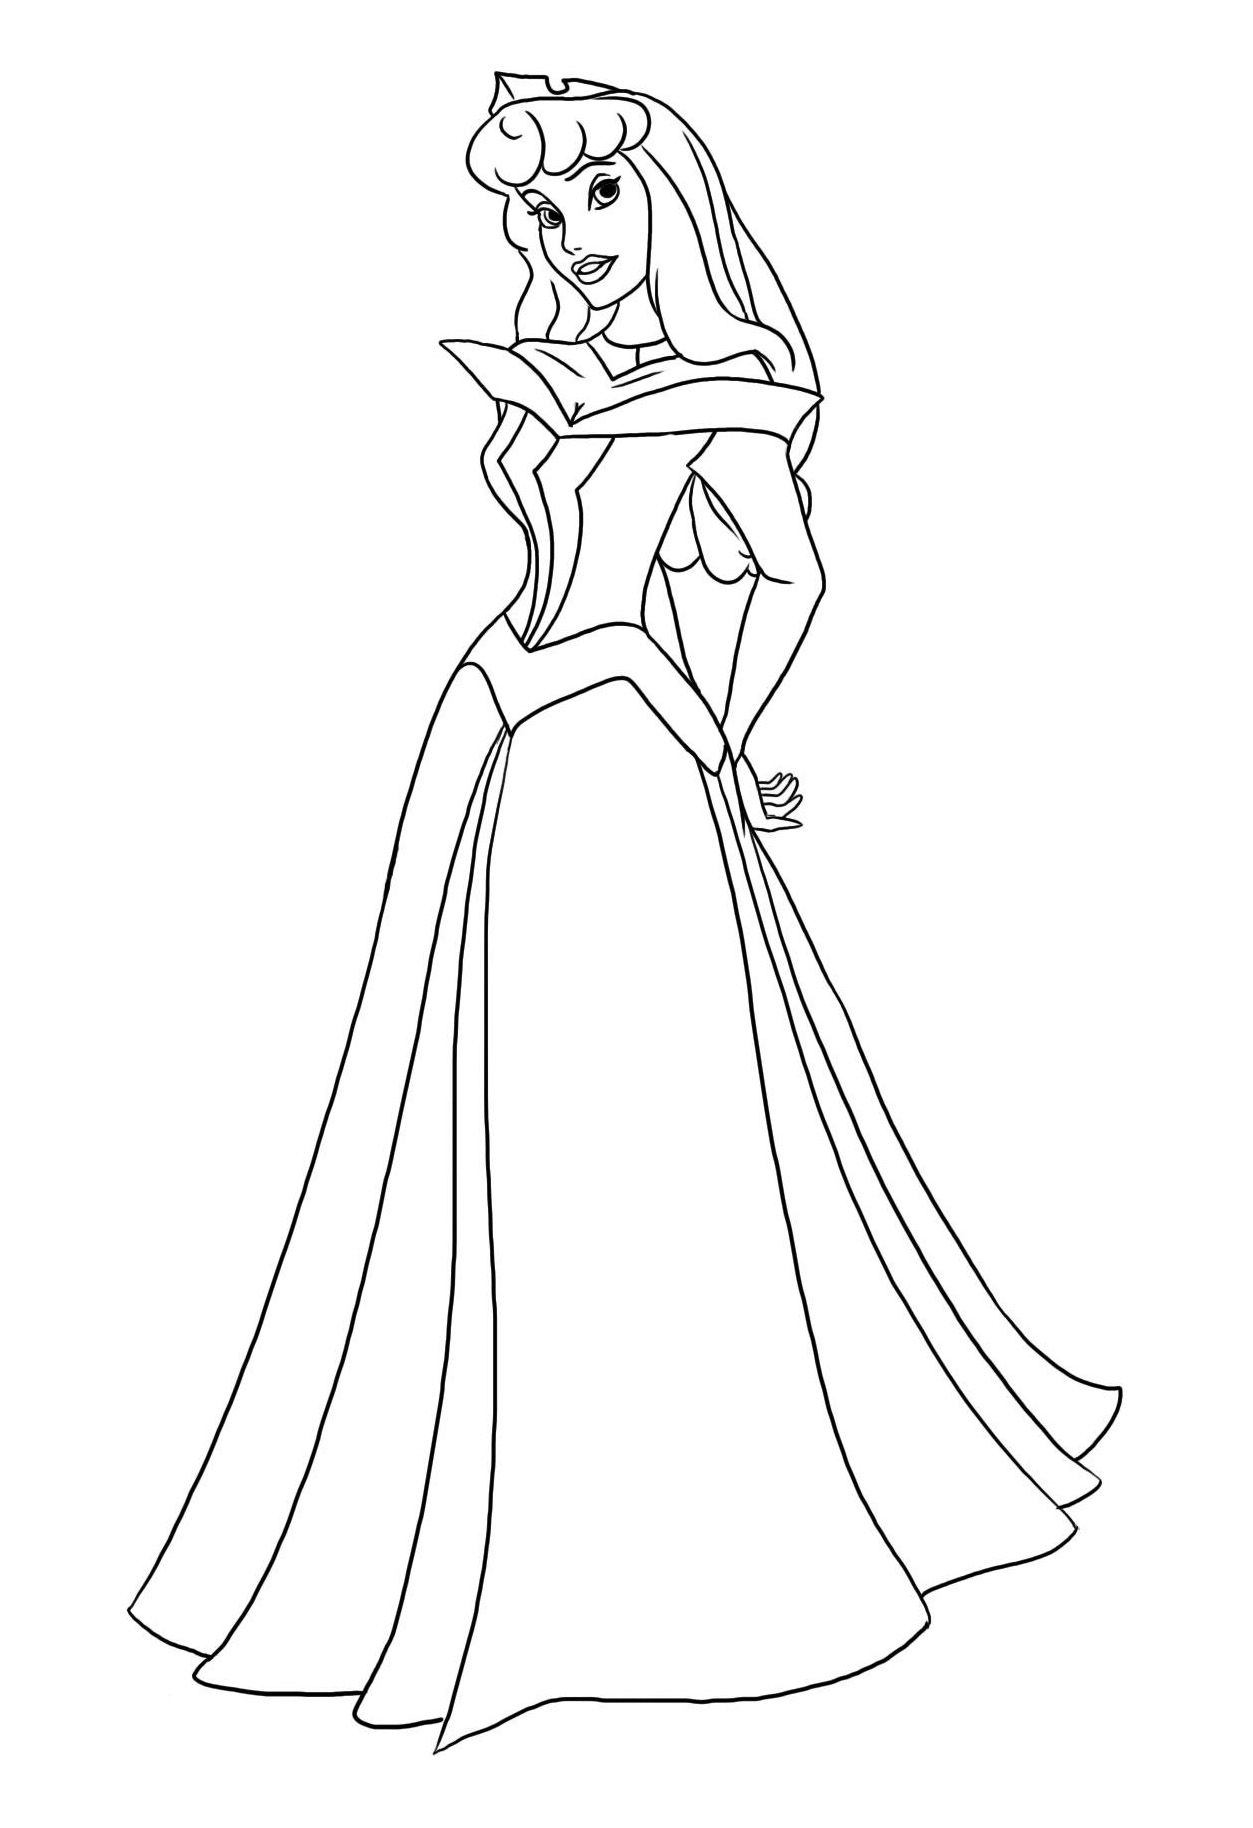 Coloriage princesse colorier dessin imprimer animaux princess coloring pages disney - Dessin de disney facile ...